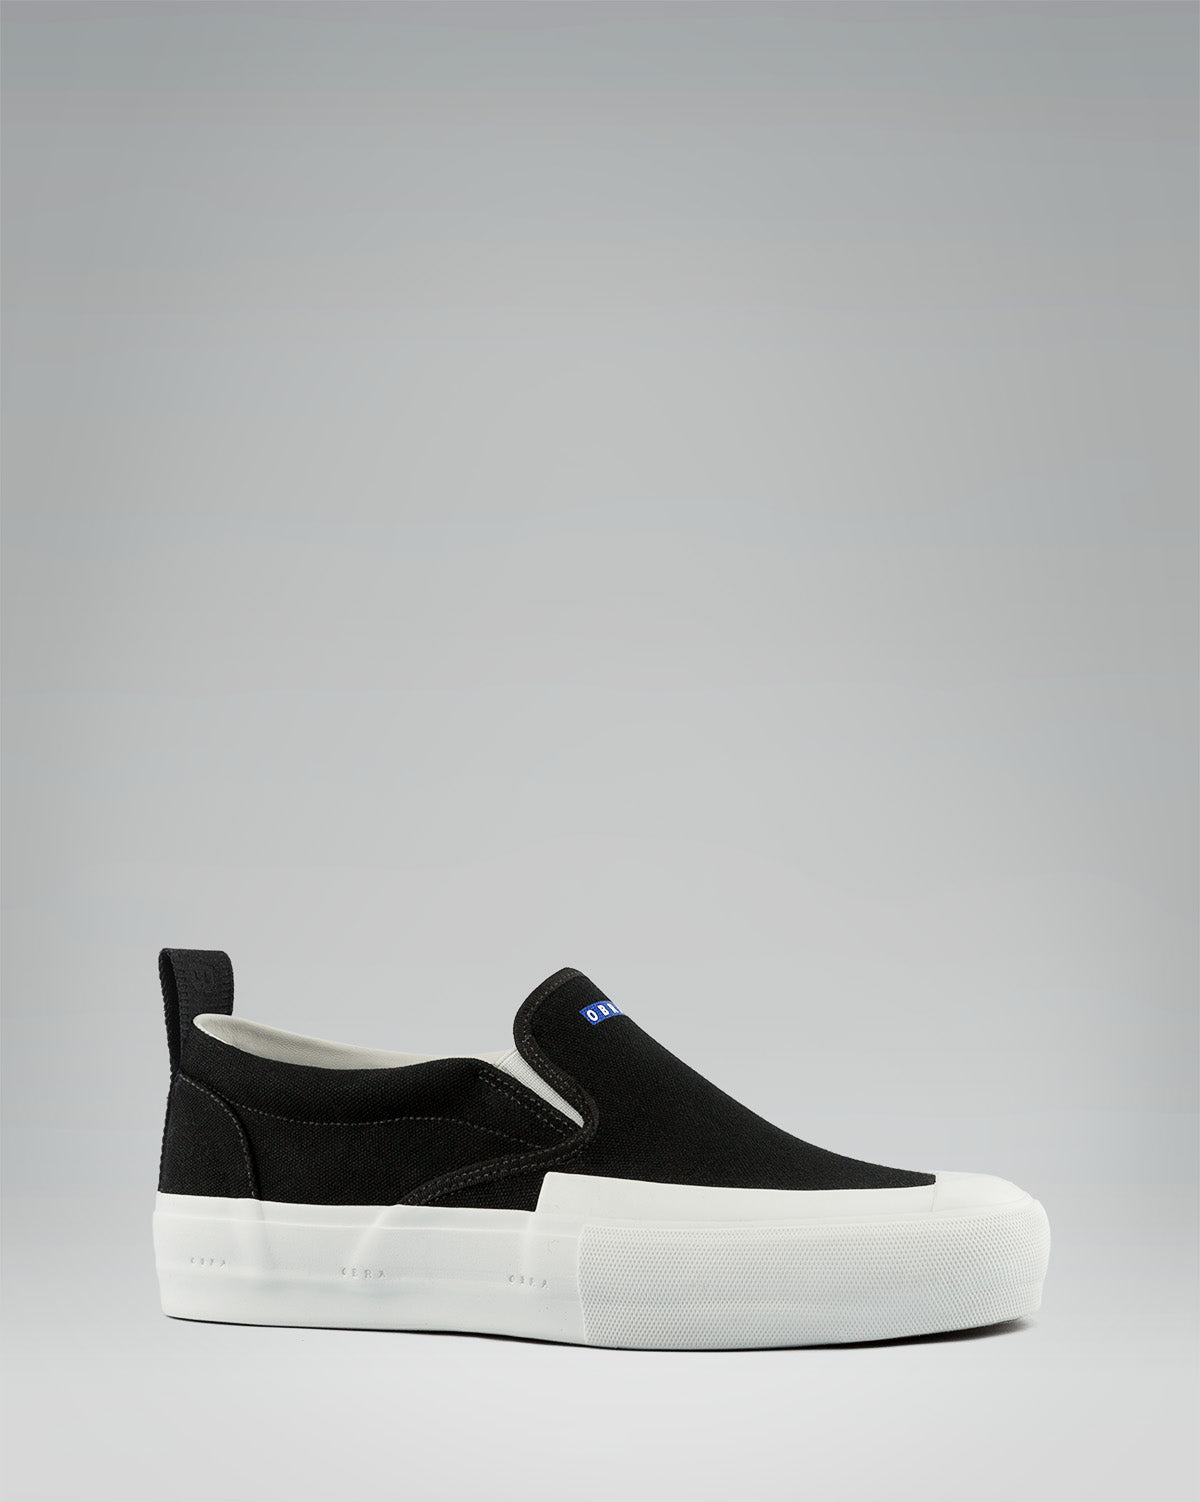 TERRA CANVAS SLIP-ON FULL CAP<br />Black/White/White